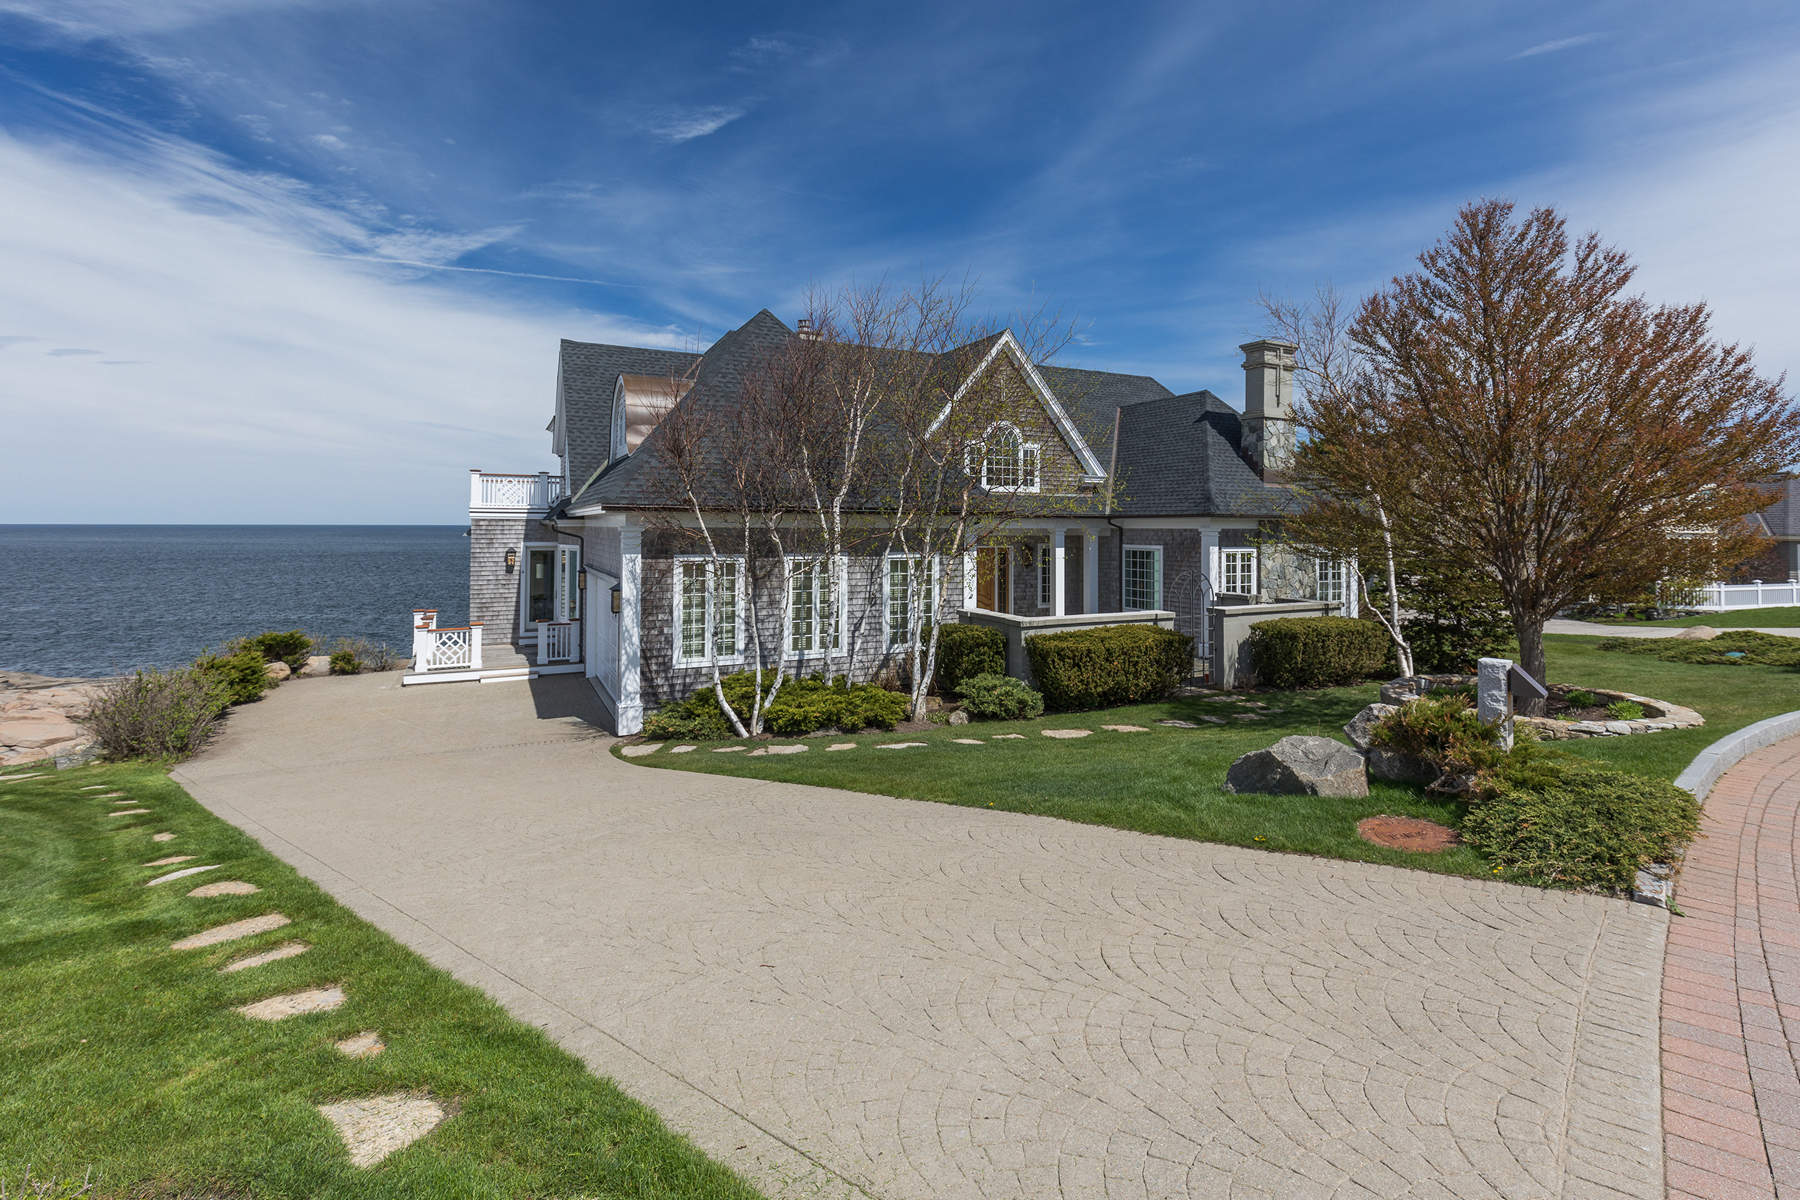 Single Family Home for Sale at Grand Oceanfront Home at Lighthouse Watch 4 Lighthouse Watch York, Maine 03909 United States